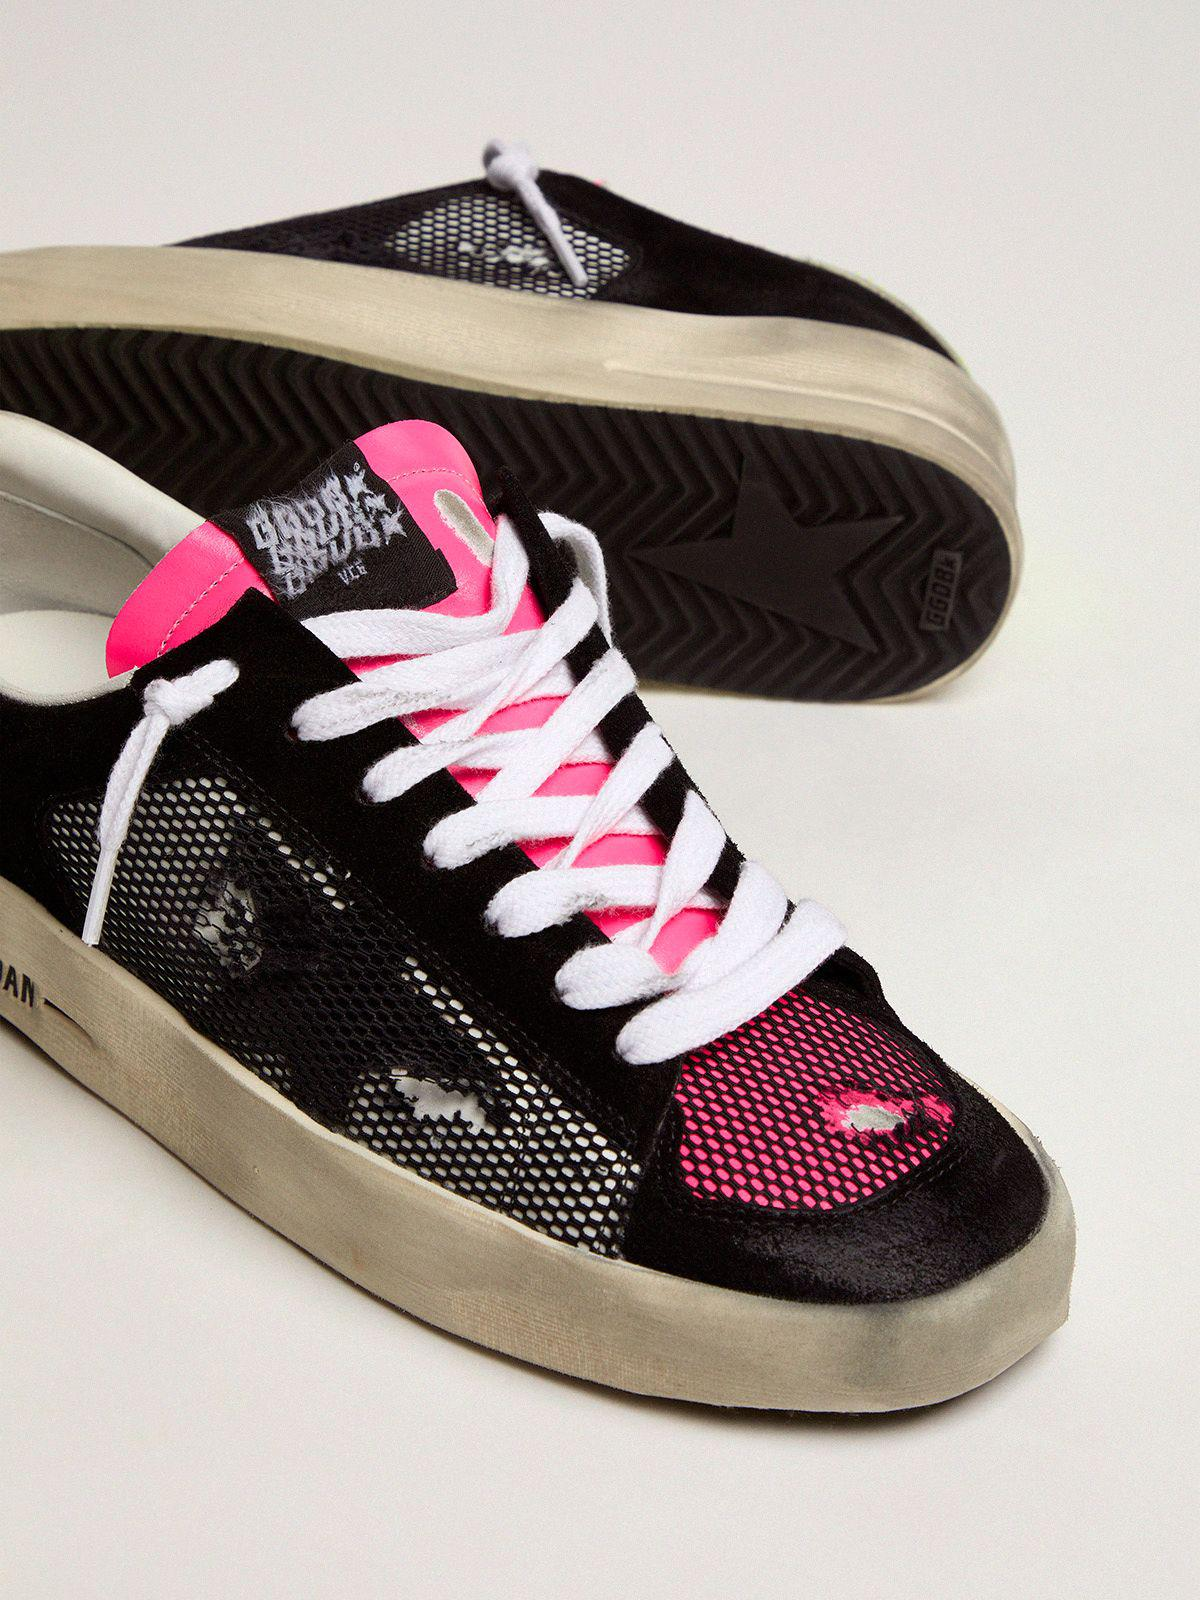 Women's Limited Edition Stardan sneakers in fuchsia and yellow 2